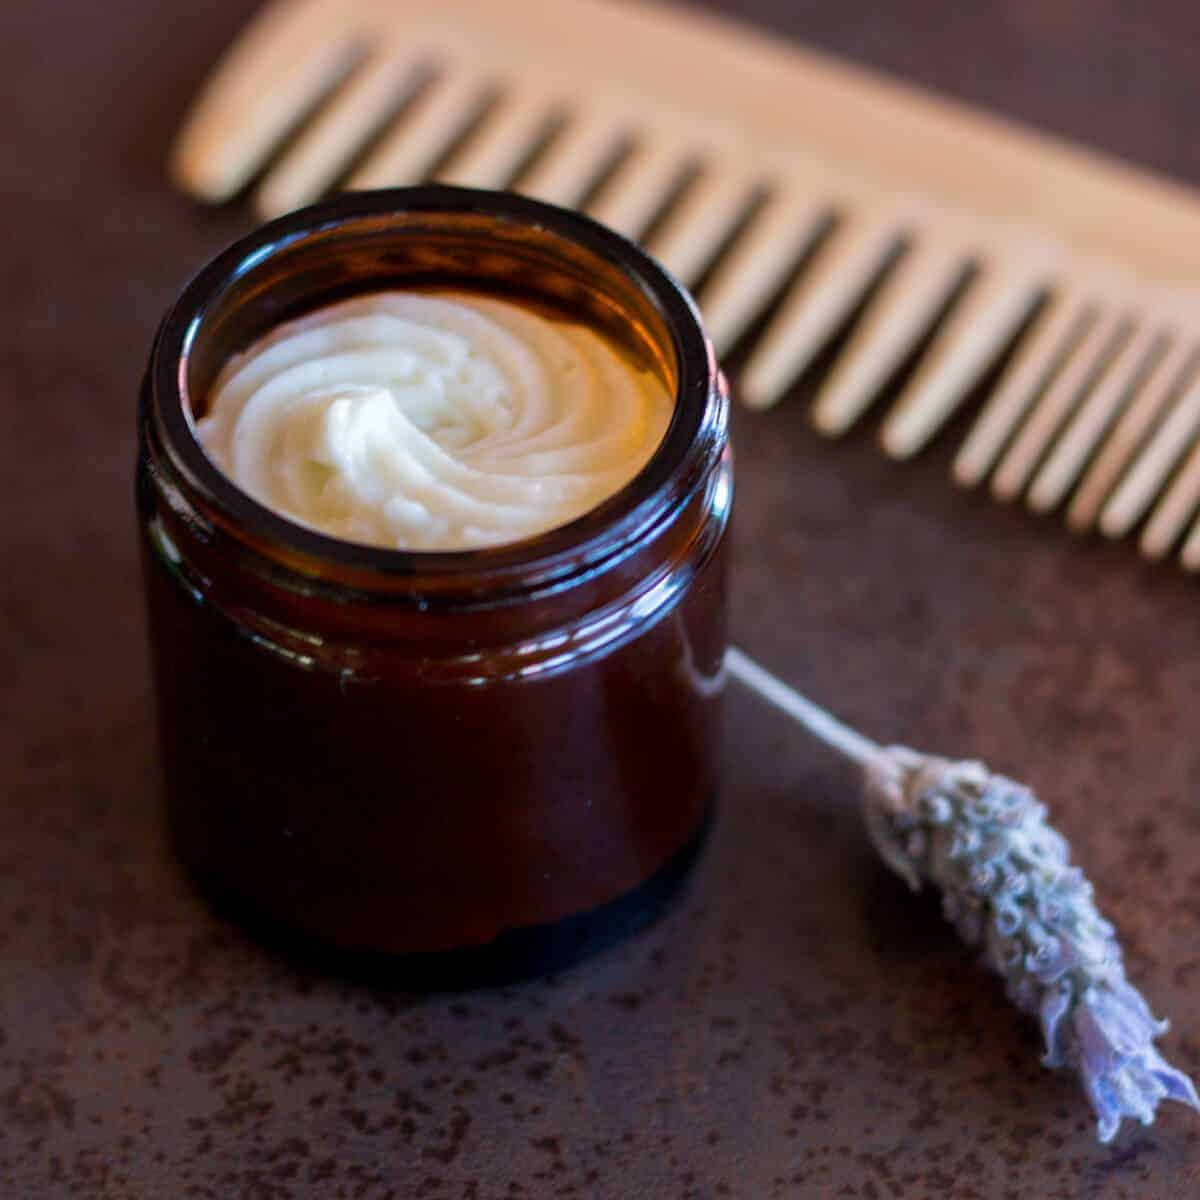 A jar filled with a homemade hair butter next to a sprig of lavender and a wooden comb